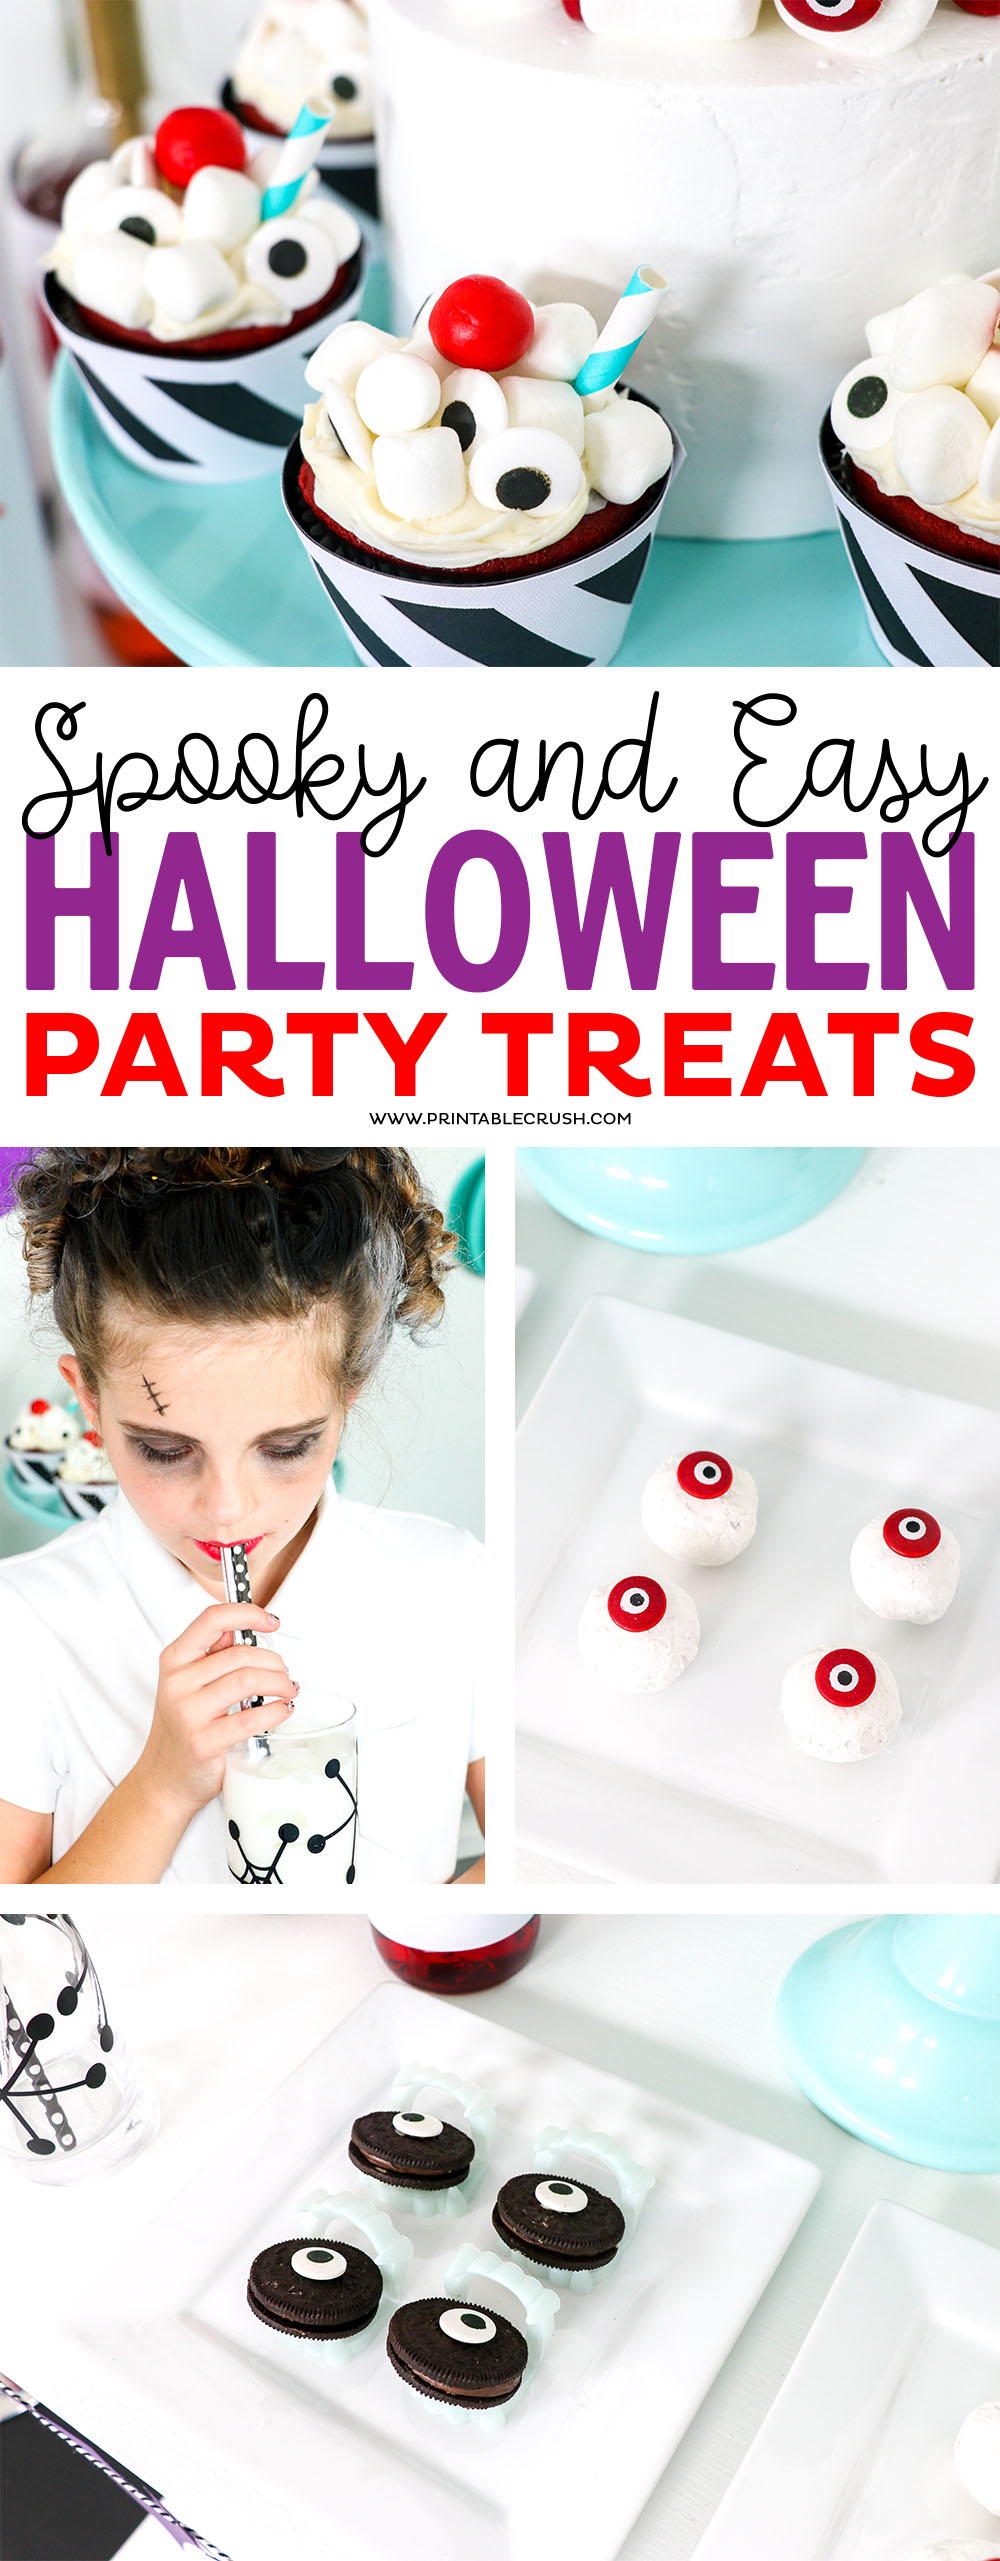 Make these Spooky and Easy Halloween Treats for your Soda Shop Halloween Party! #halloween #halloweentreats #halloweenparty